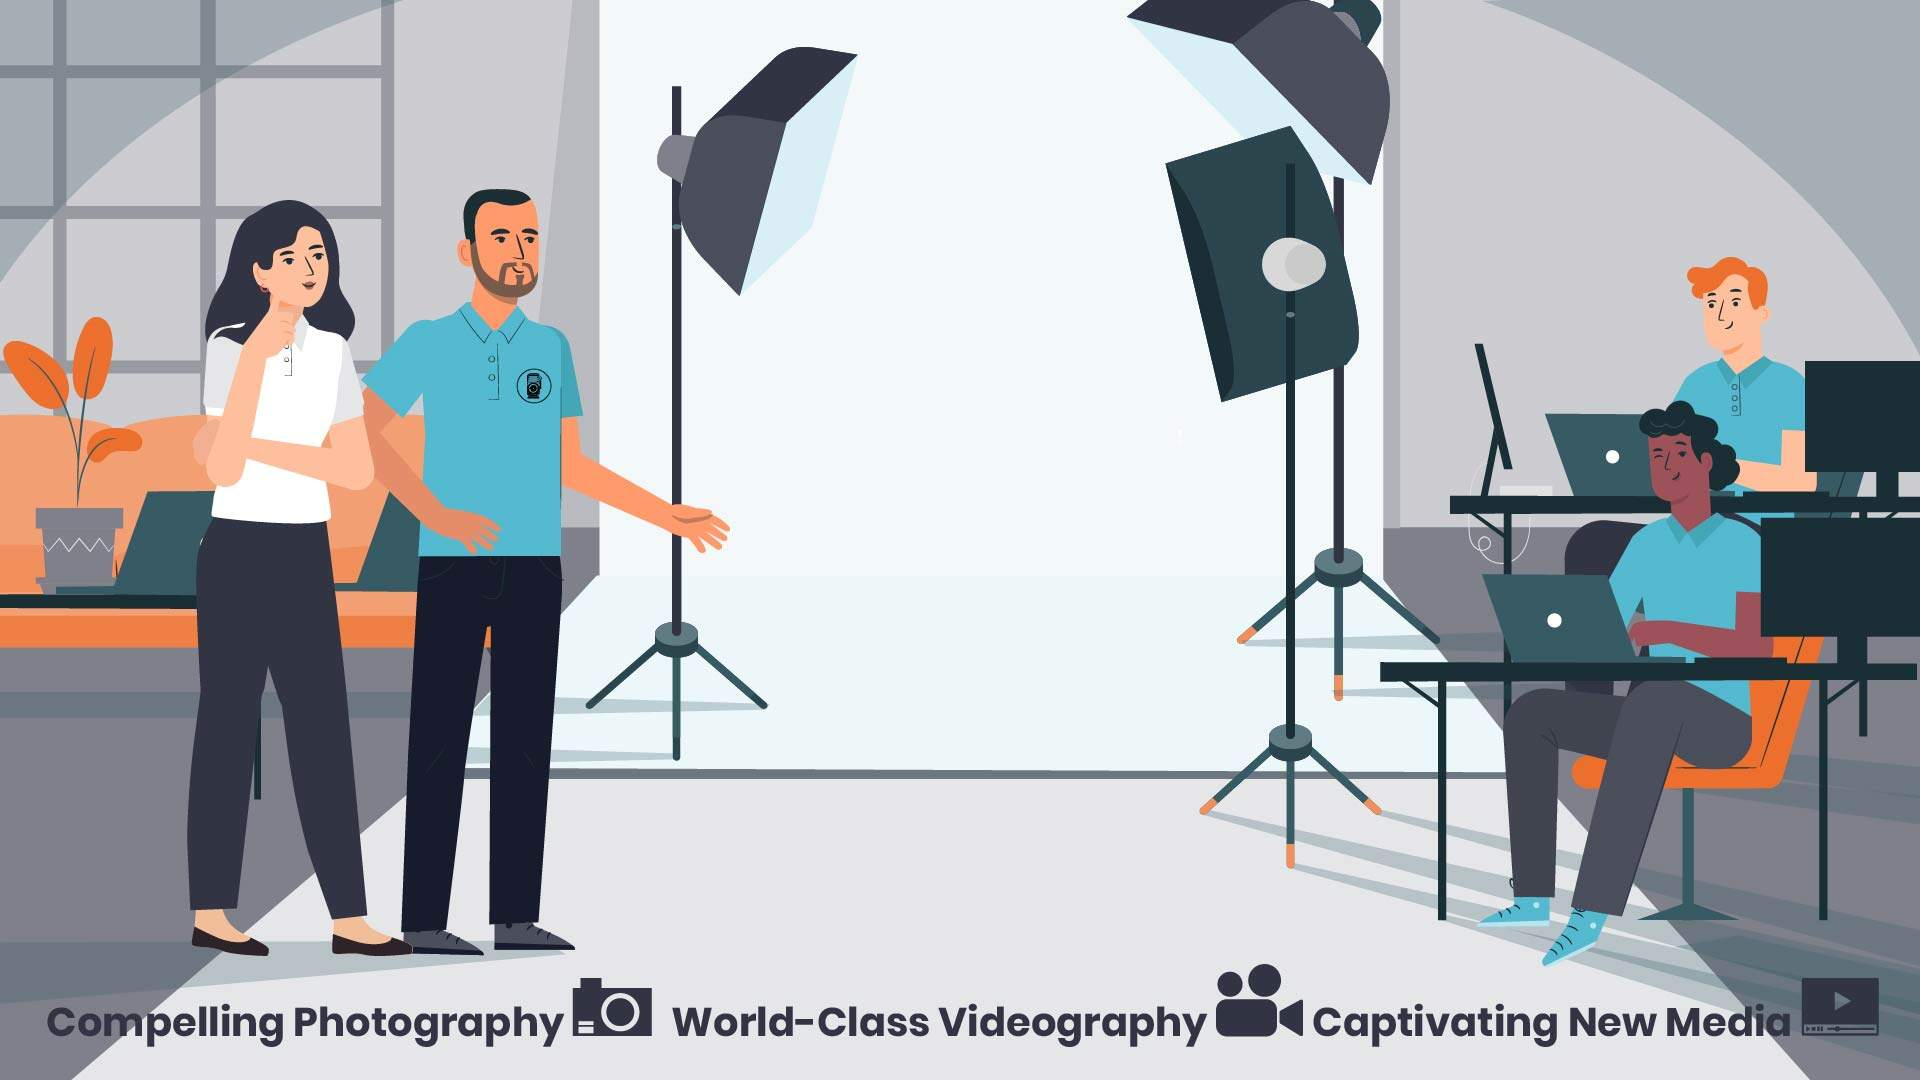 Creating professional content - an animated video about a startup